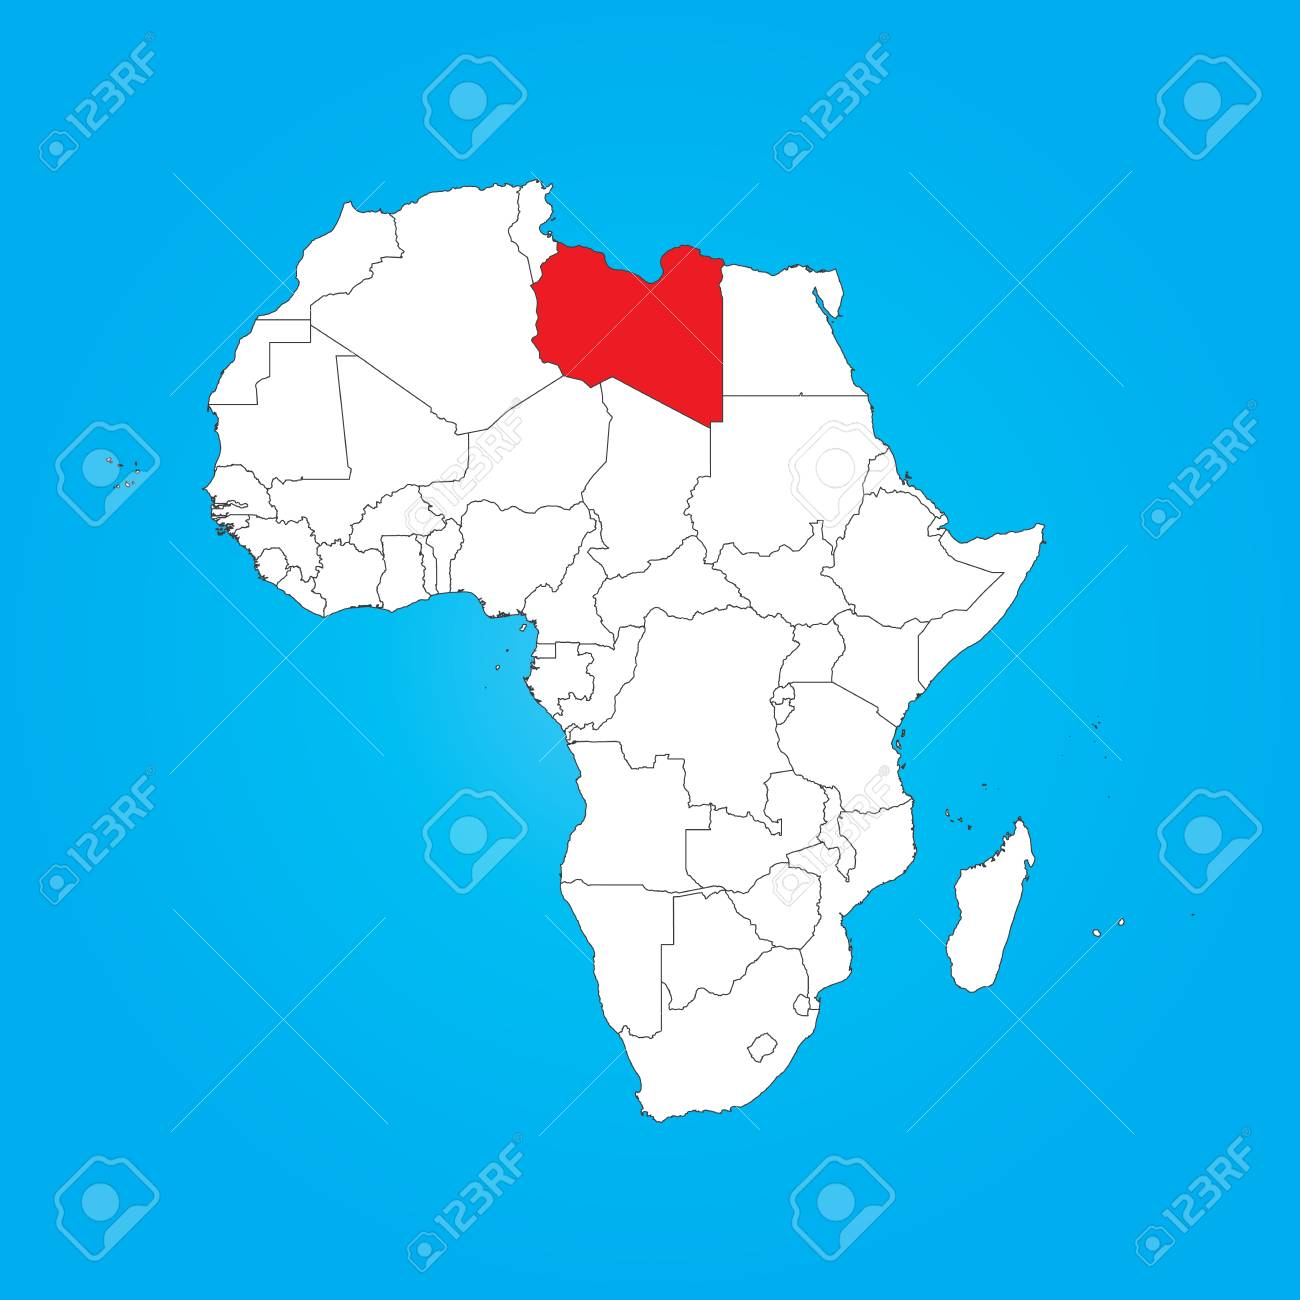 Libya Map Africa A Map Of Africa With A Selected Country Of Libya Stock Photo